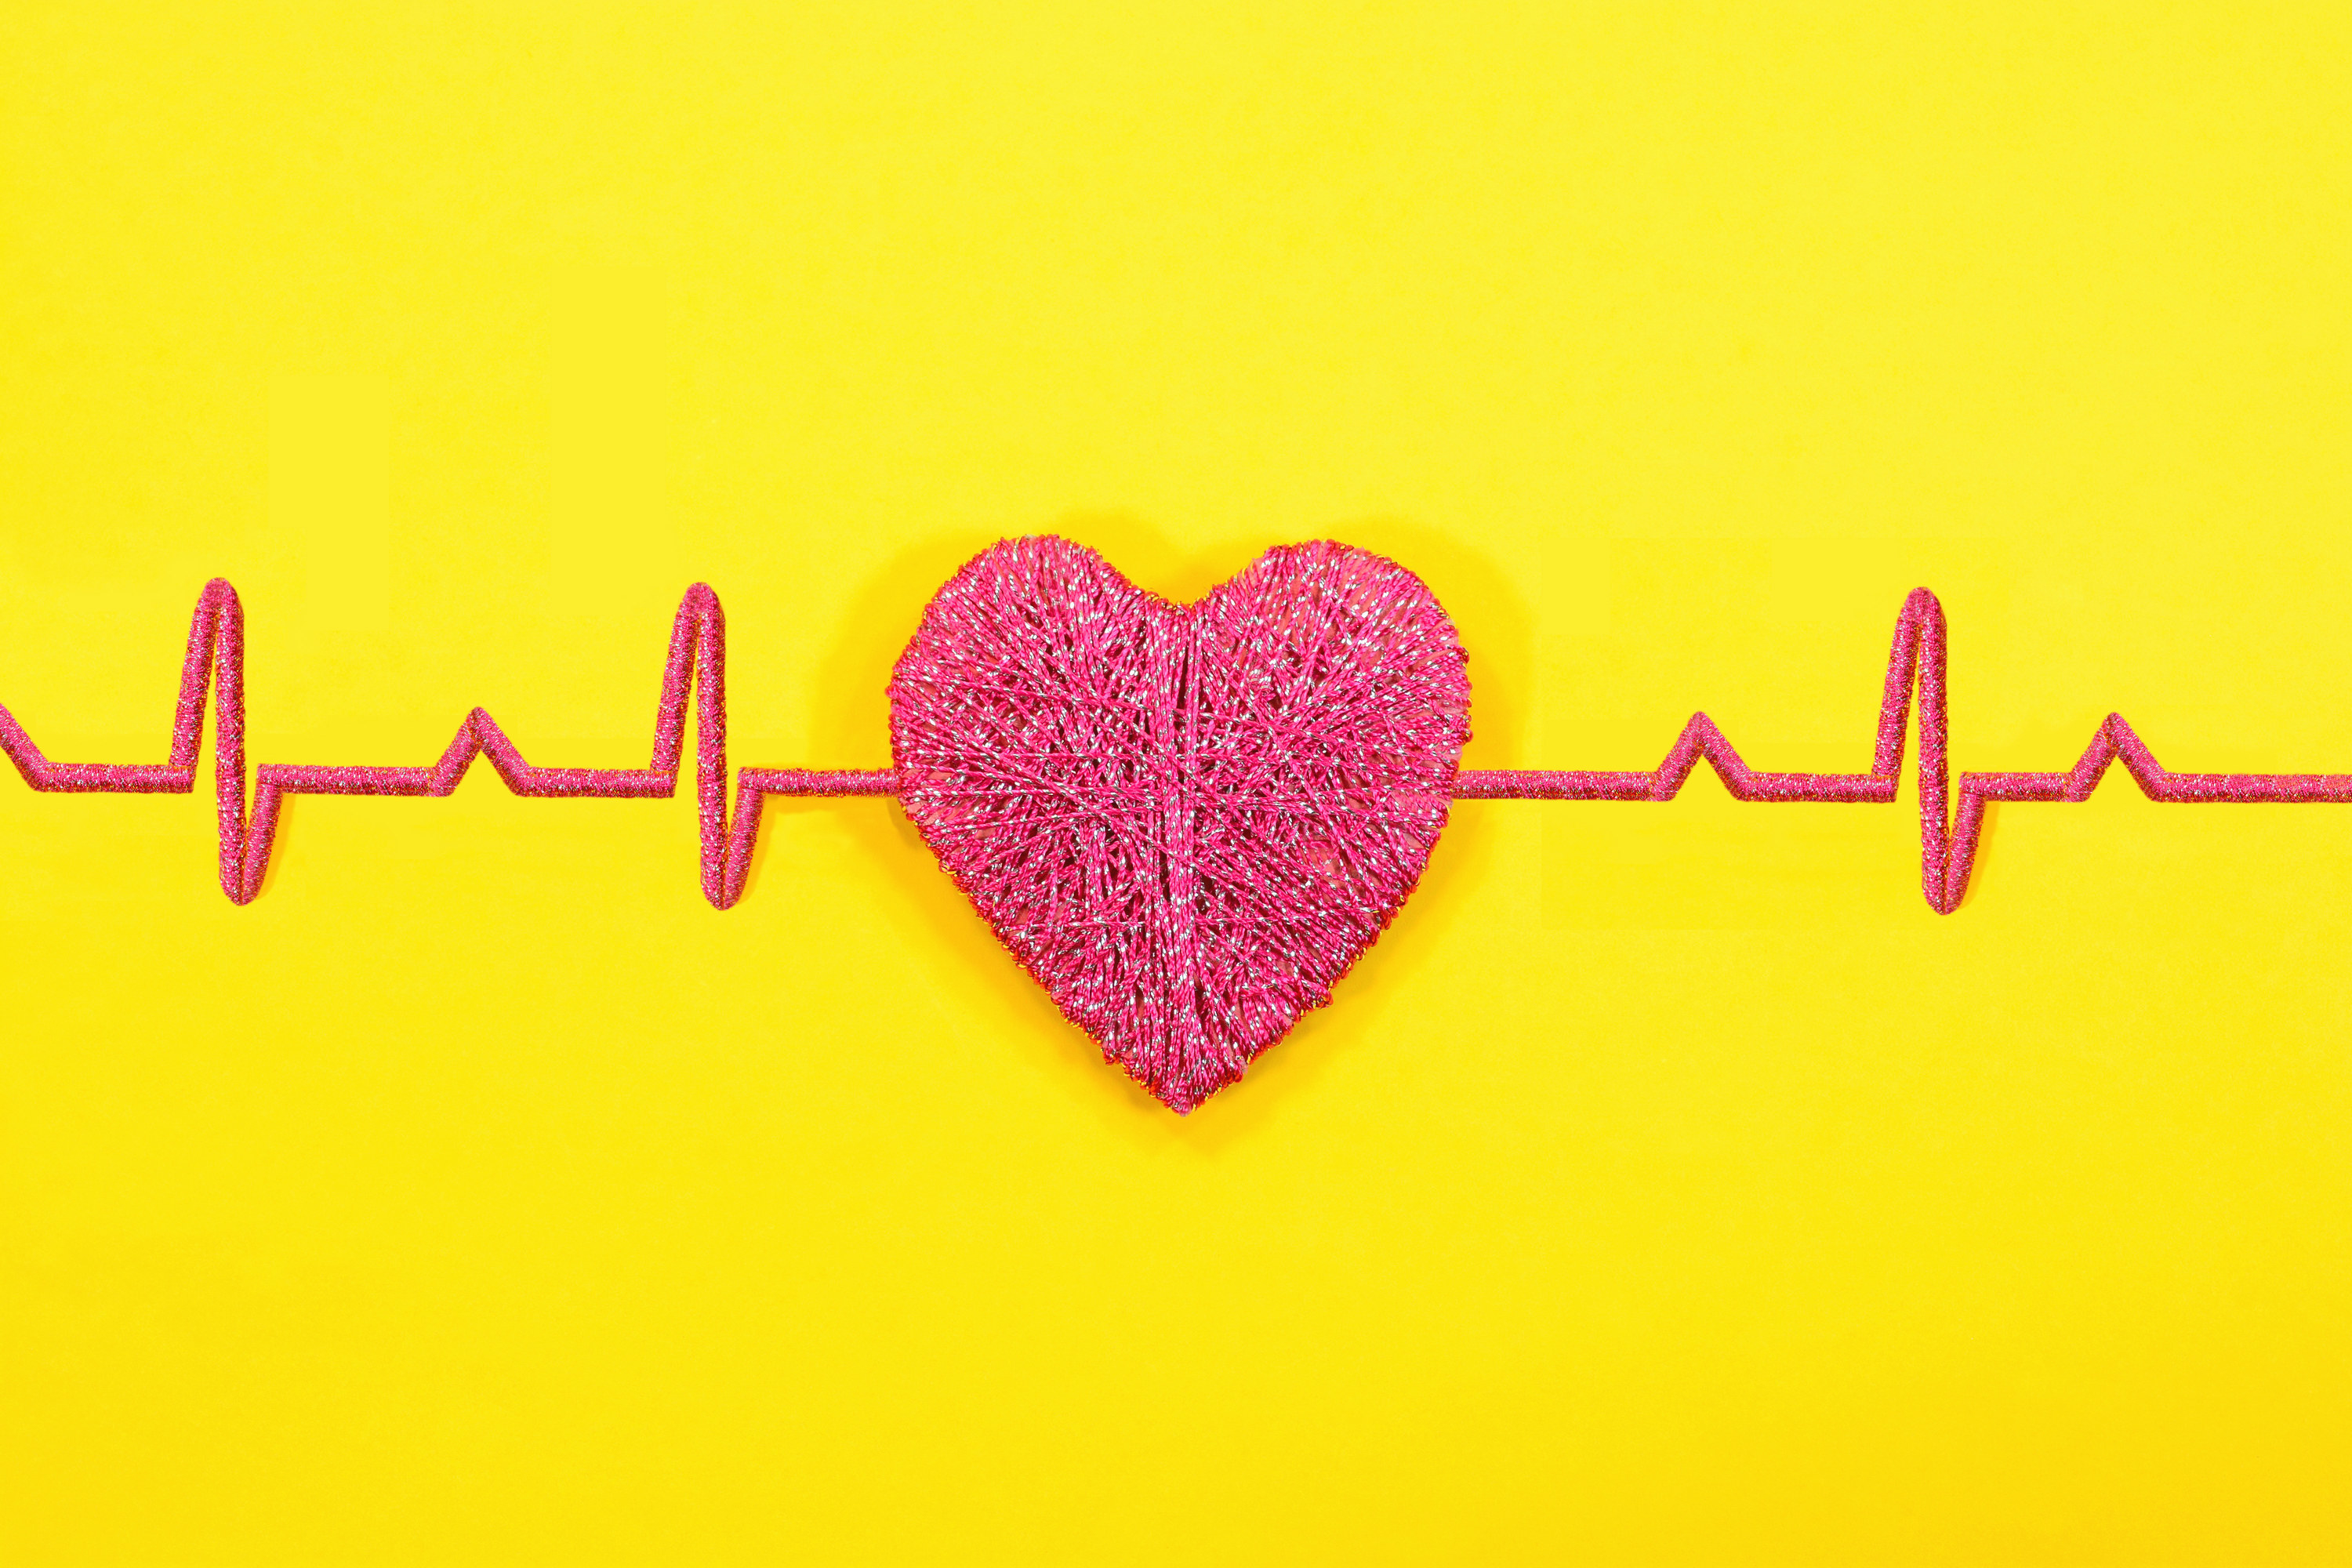 An image of a heart on a yellow background